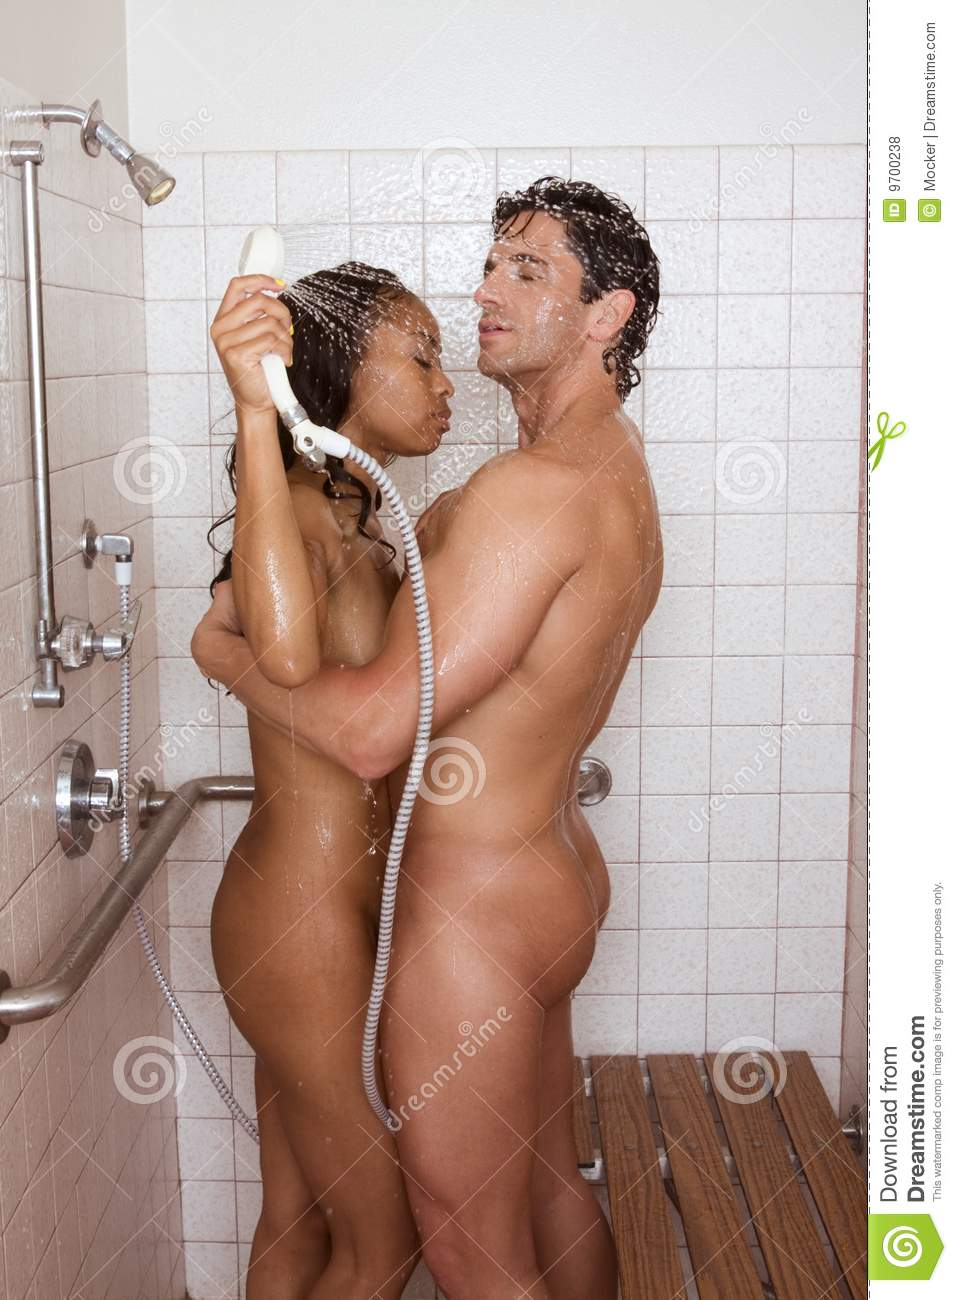 Naked Sensual Couple Man And Woman In Shower Stock Photo -5080